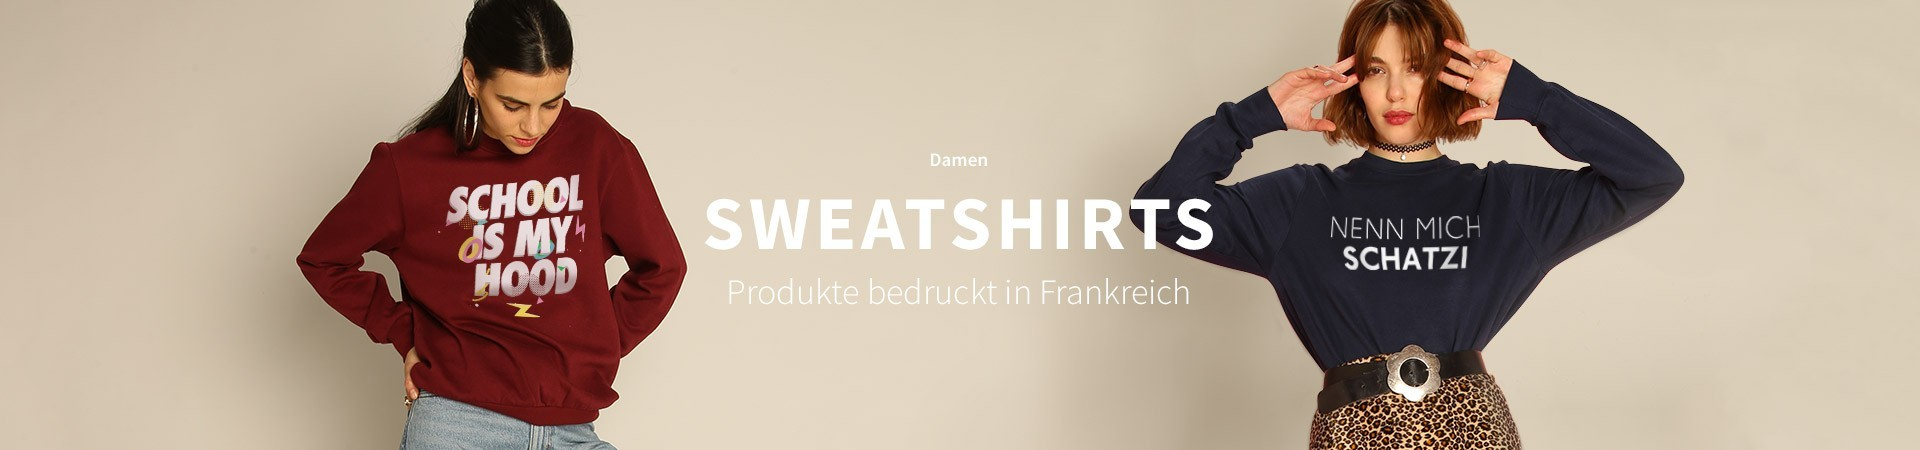 Damen Sweatshirts